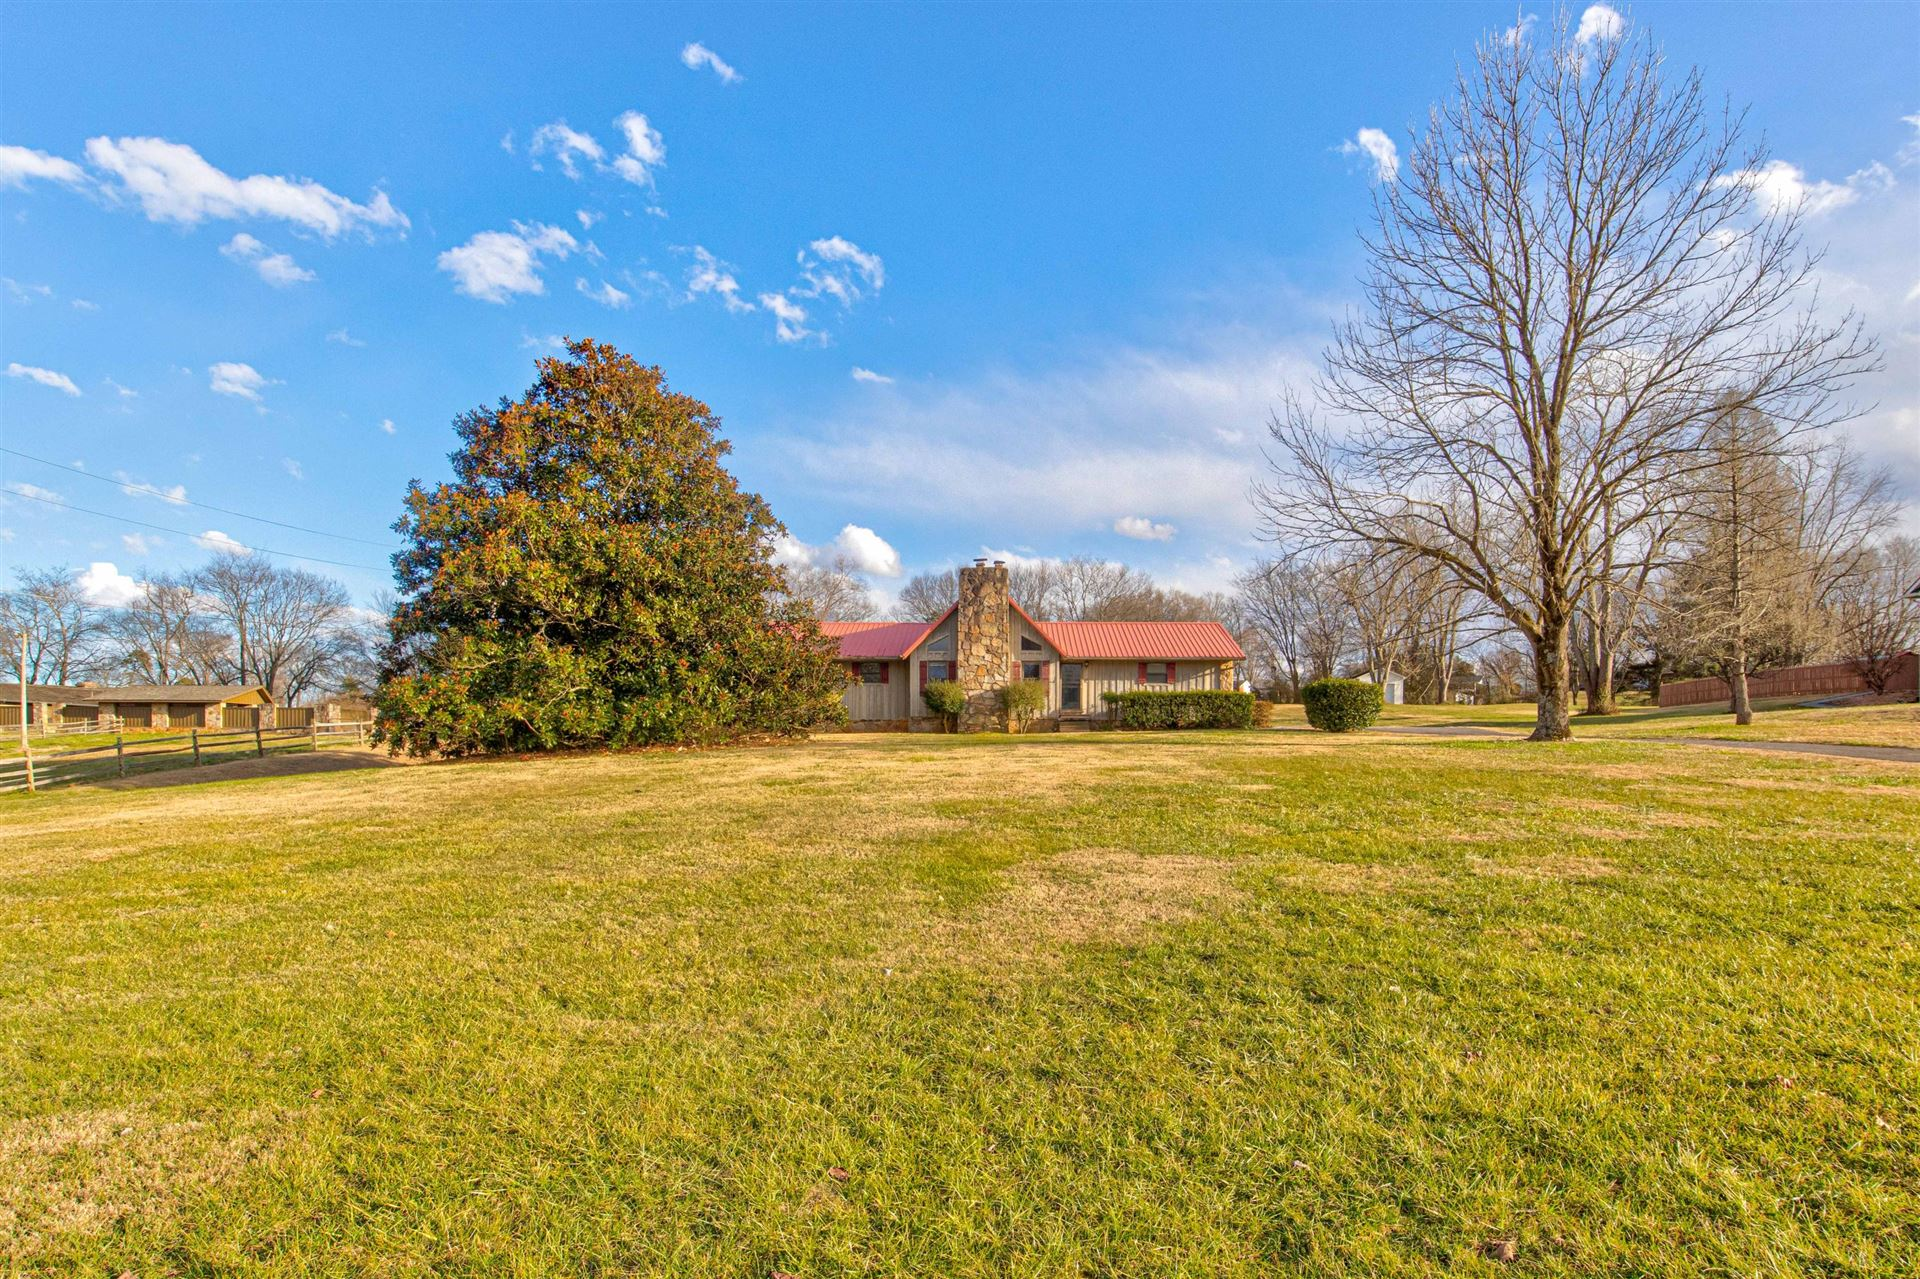 Photo of 3525 Peppermint Hills Drive, Maryville, TN 37804 (MLS # 1140008)